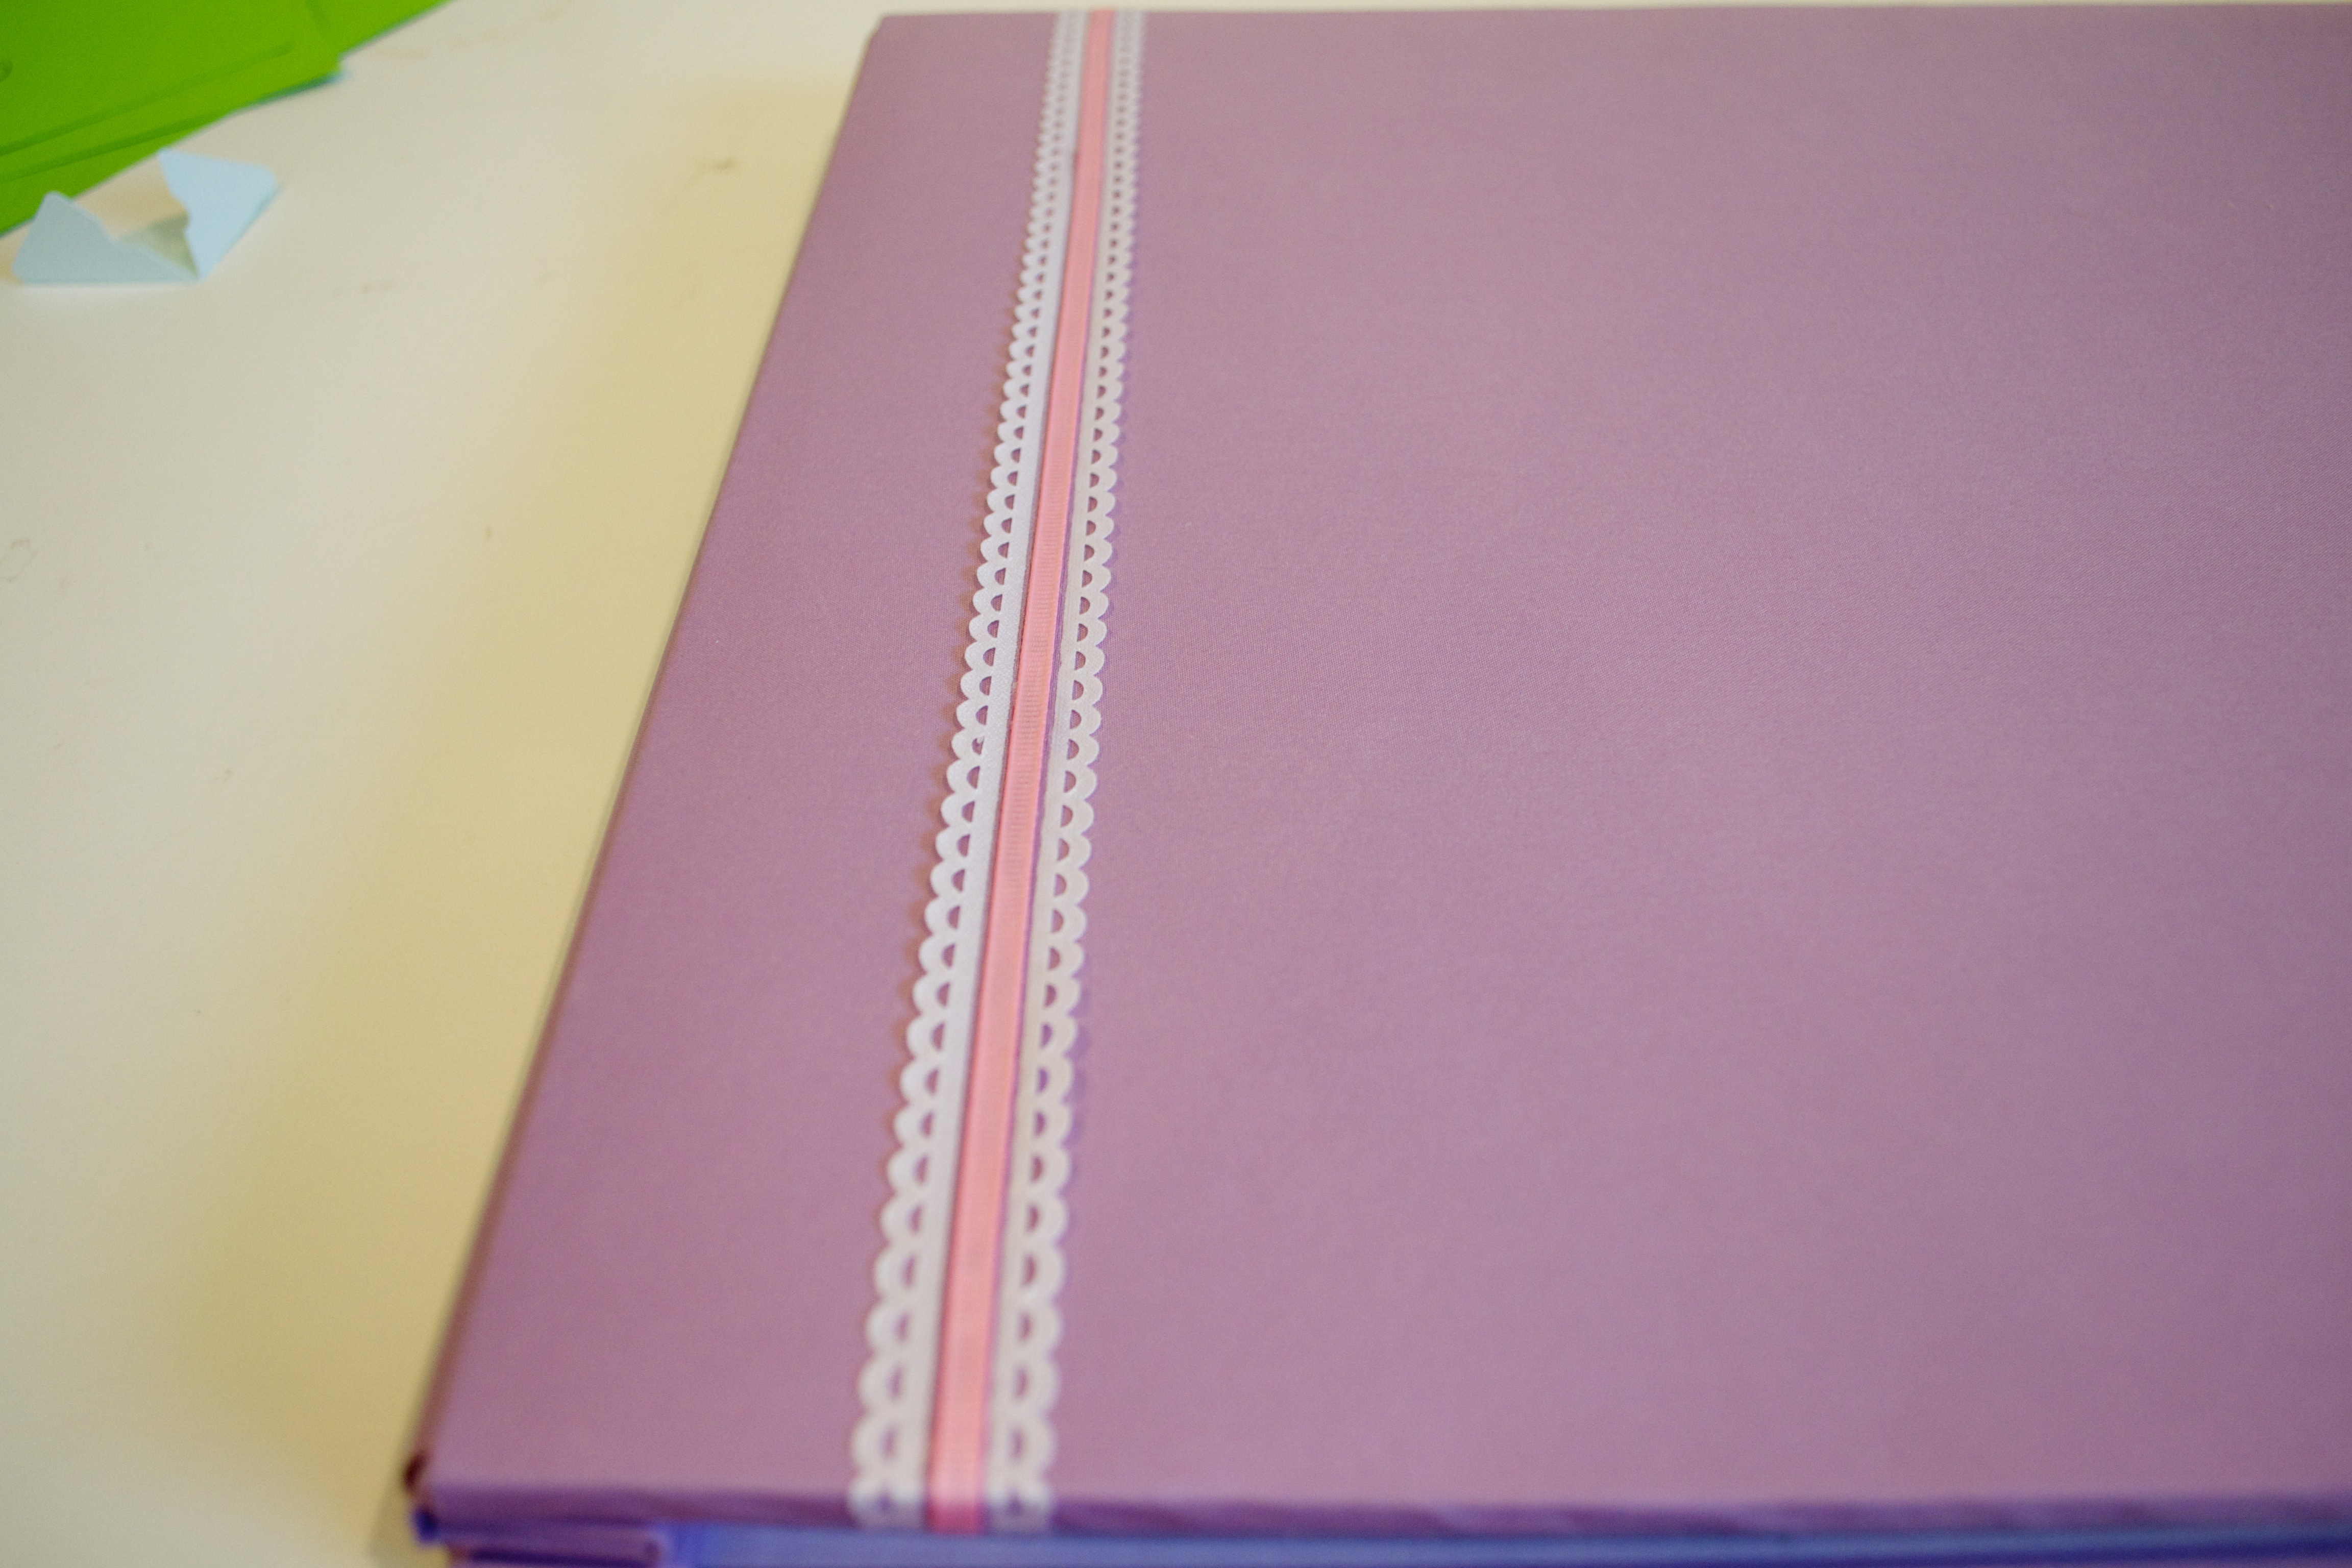 Scrapbook ideas step by step - Finally You Re Almost Done If You Have An Album With A Picture Pocket In The Front Make Something Cute Like A Monogram To Place Inside And